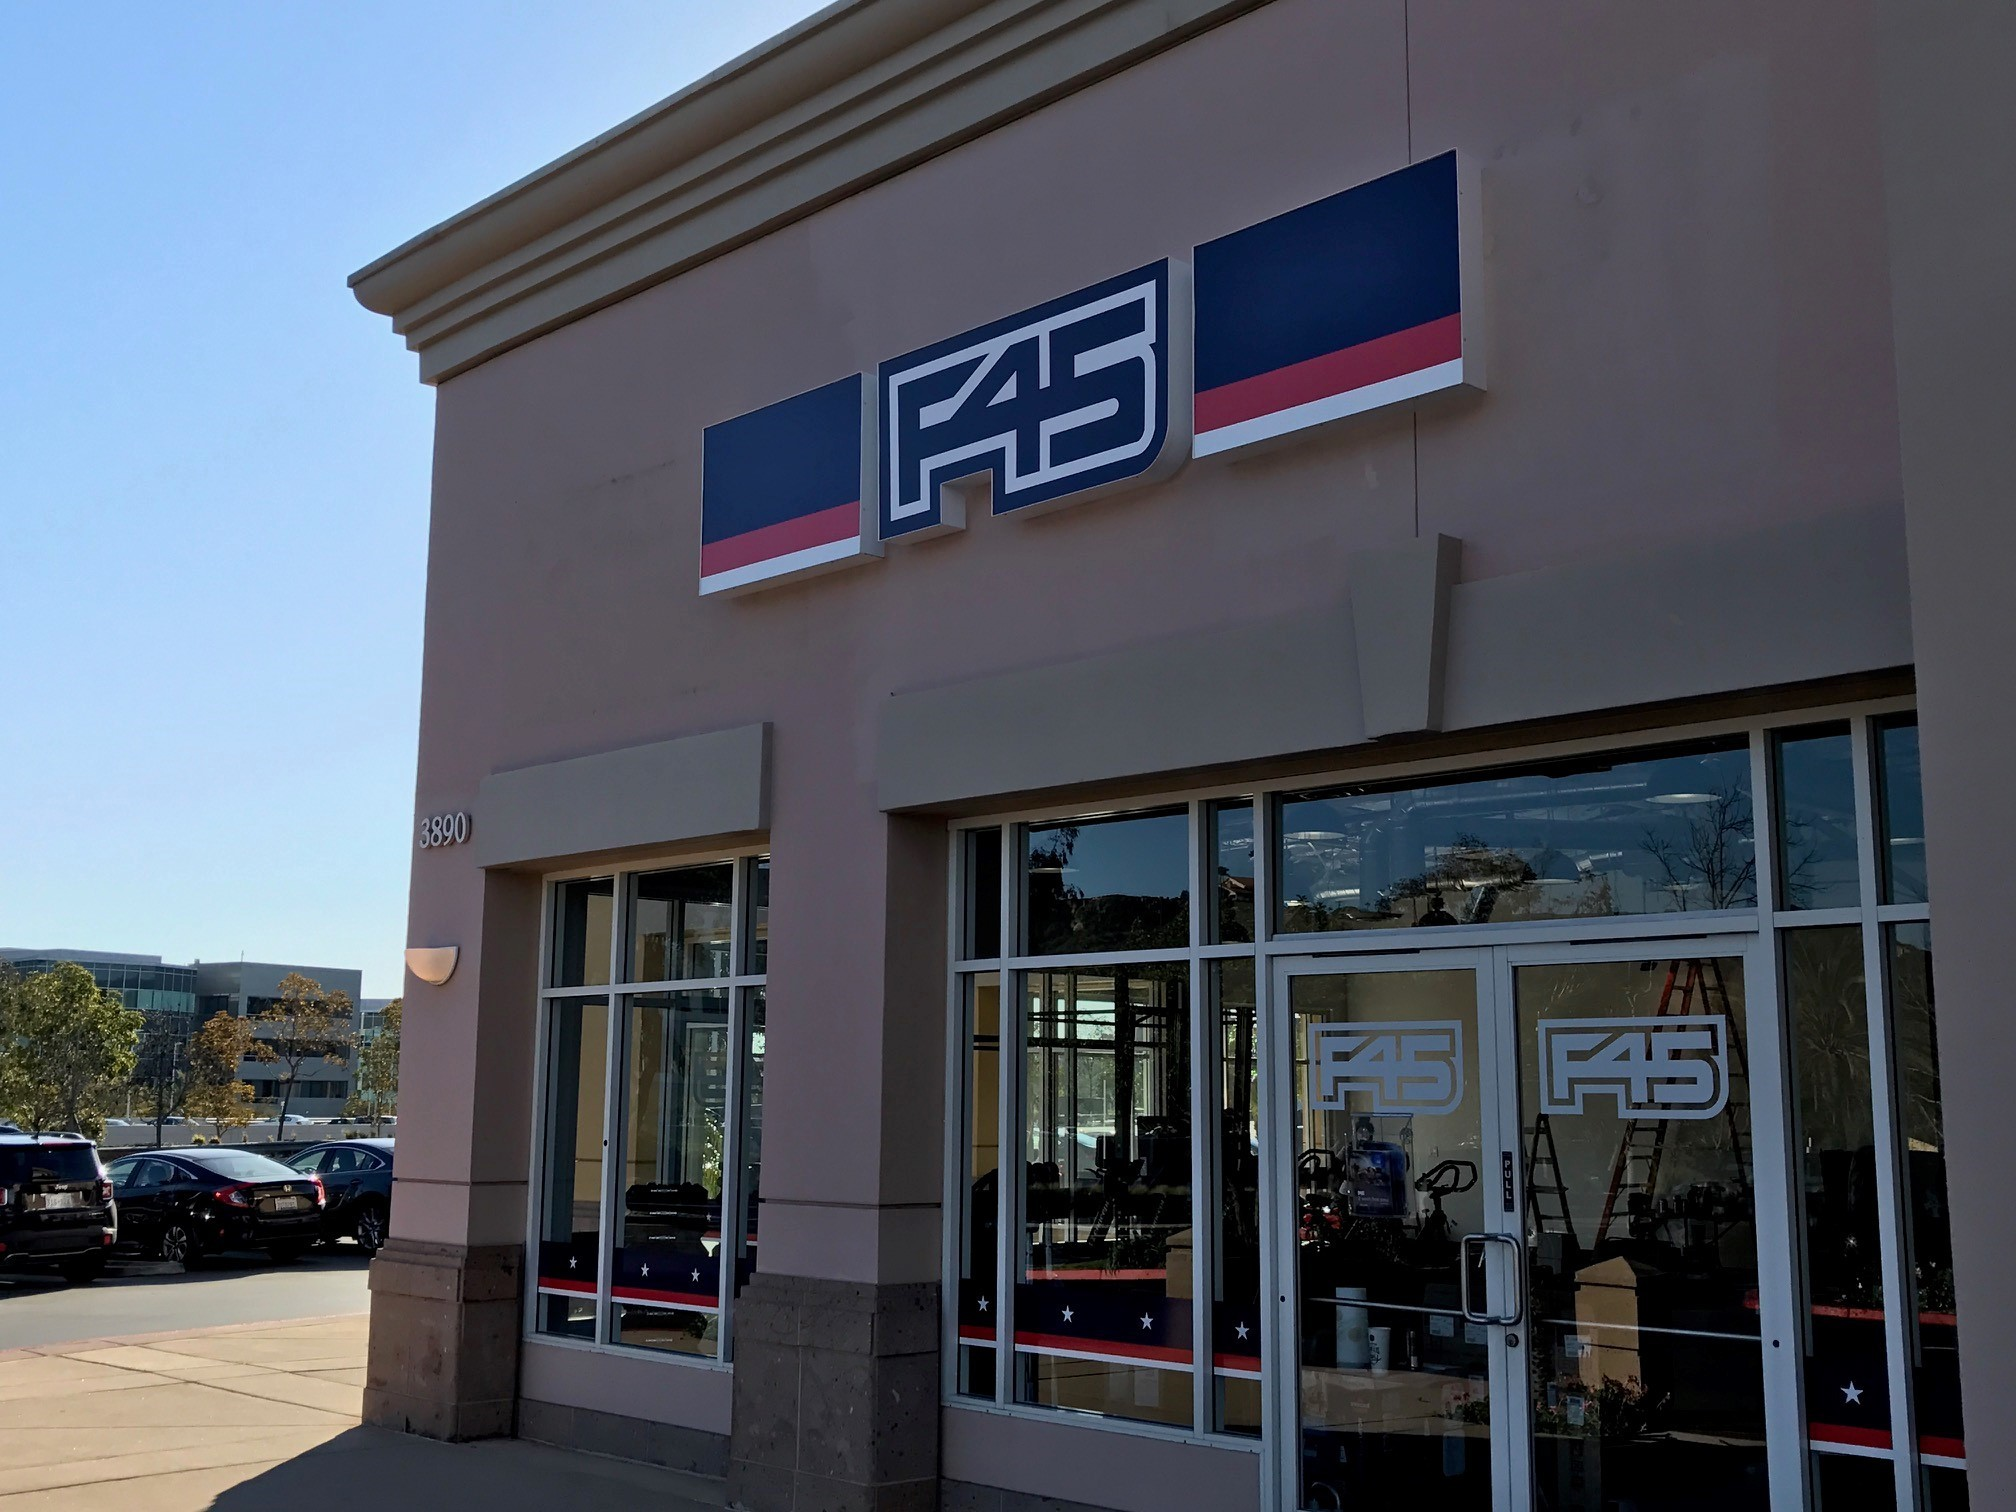 F45 in Pizza Carmel.